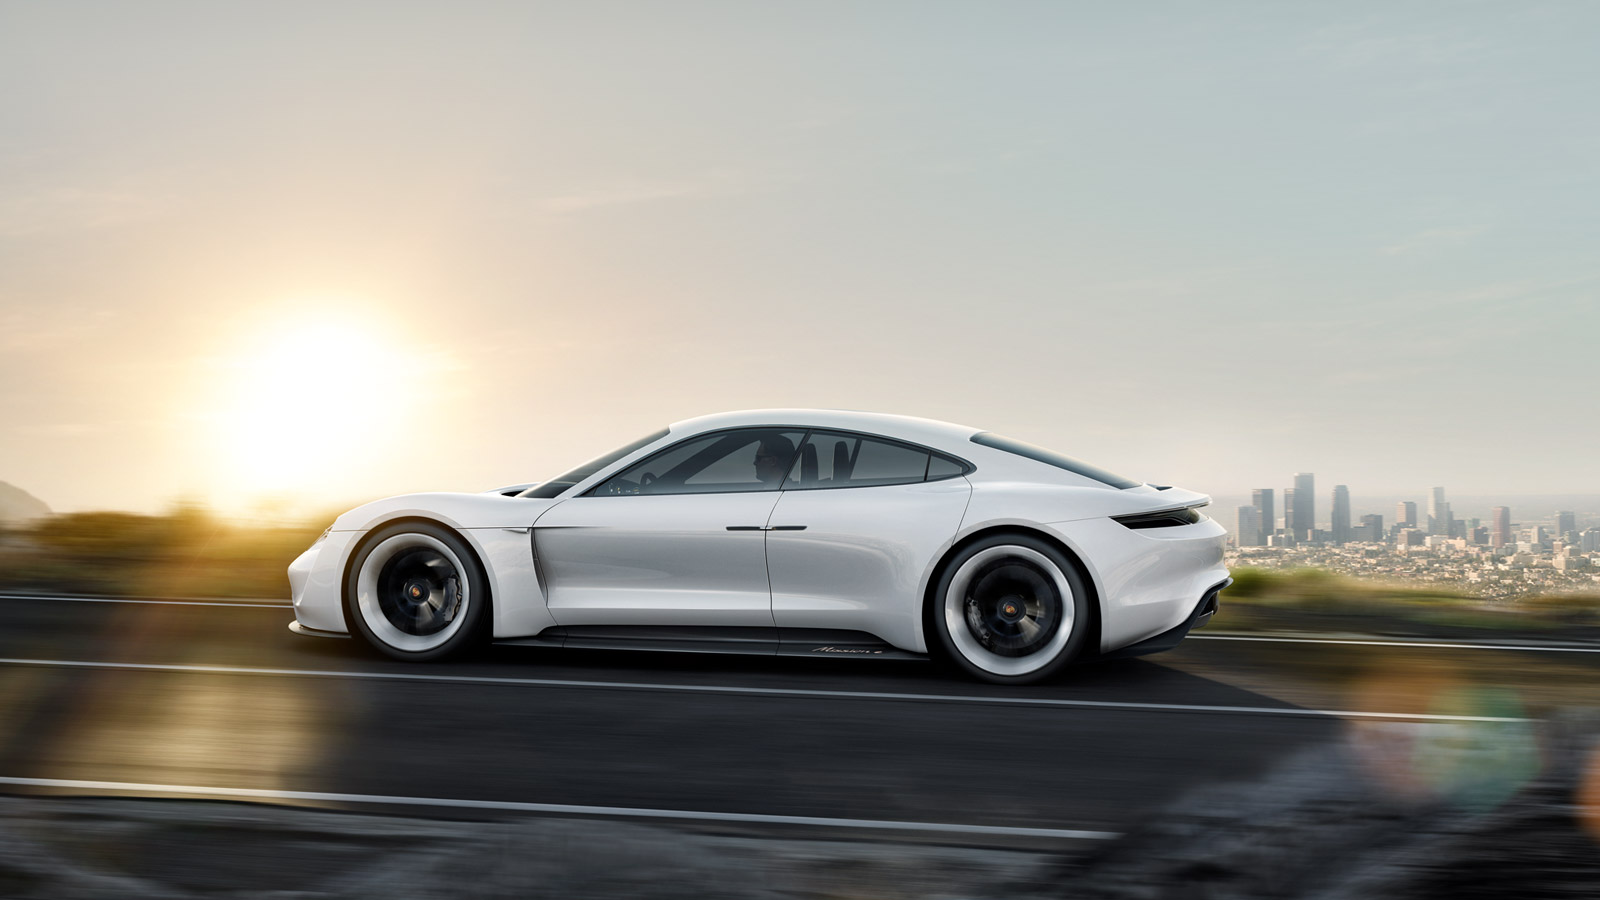 bentley car price uk with Porsches Mission E Concept Car Electrifies Frankfurt Motor Show on Polestar Electric Coupe Unveiled In Pictures further 2018 Rolls Royce Cullinan Revealed together with Flying Spur together with Review besides Italdesign Gtr50.